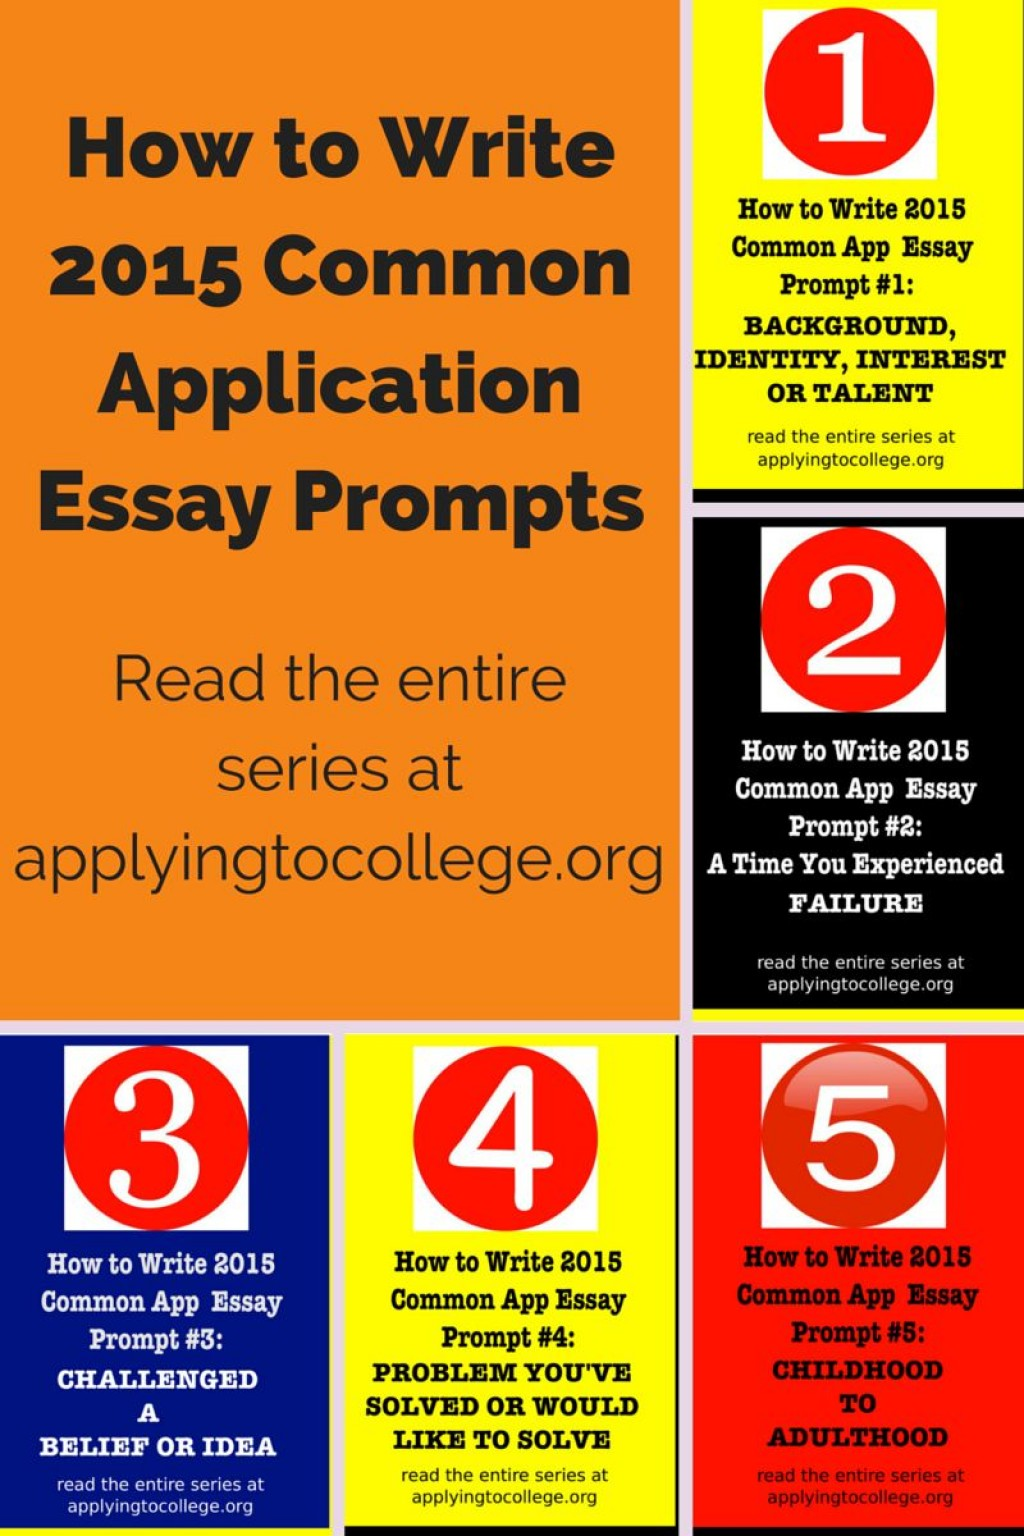 001 Common Application Essay Prompts Example Surprising 2015 App Large